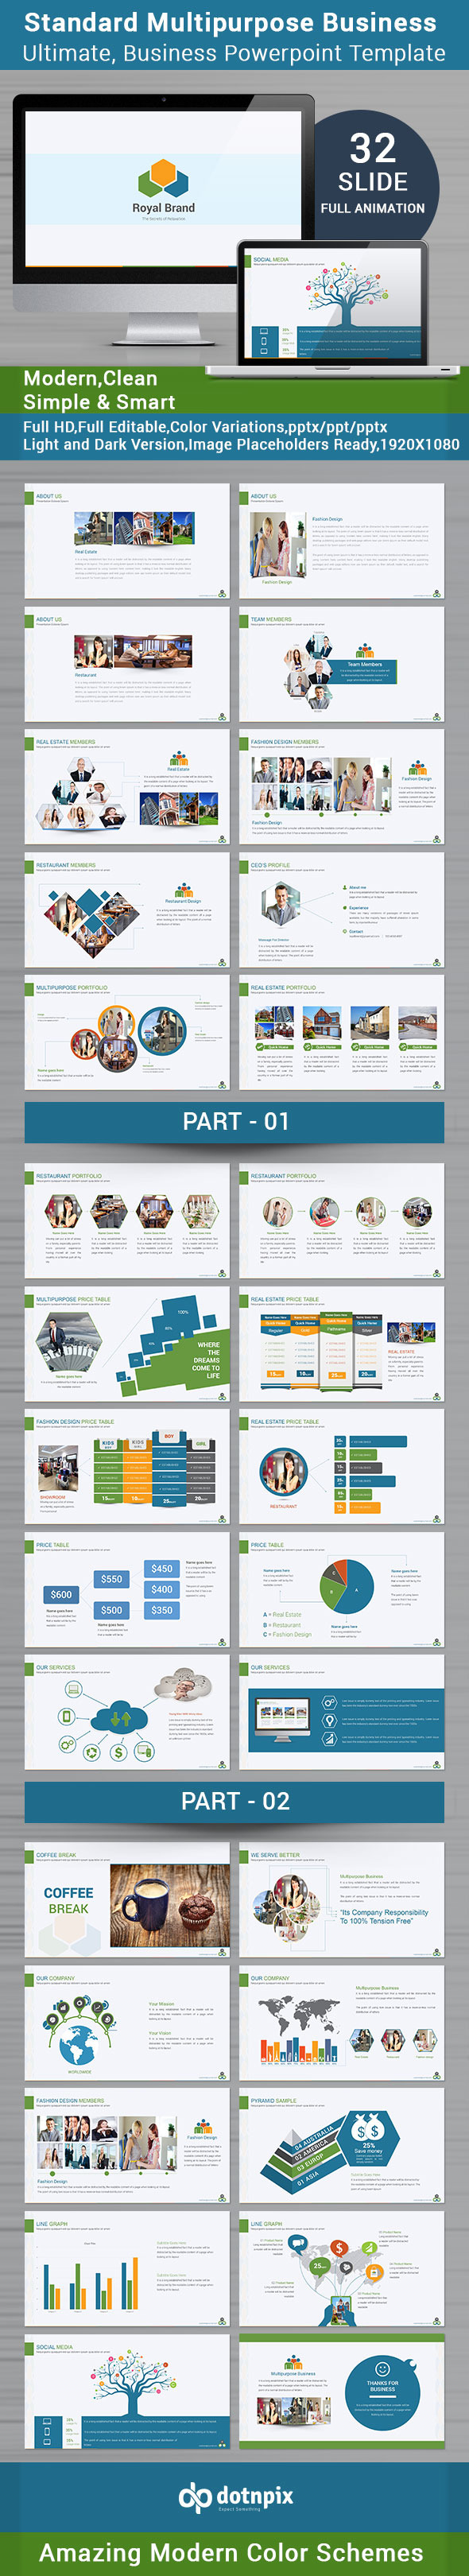 GraphicRiver Standard Multipurpose Business Powerpoint Template 9911490